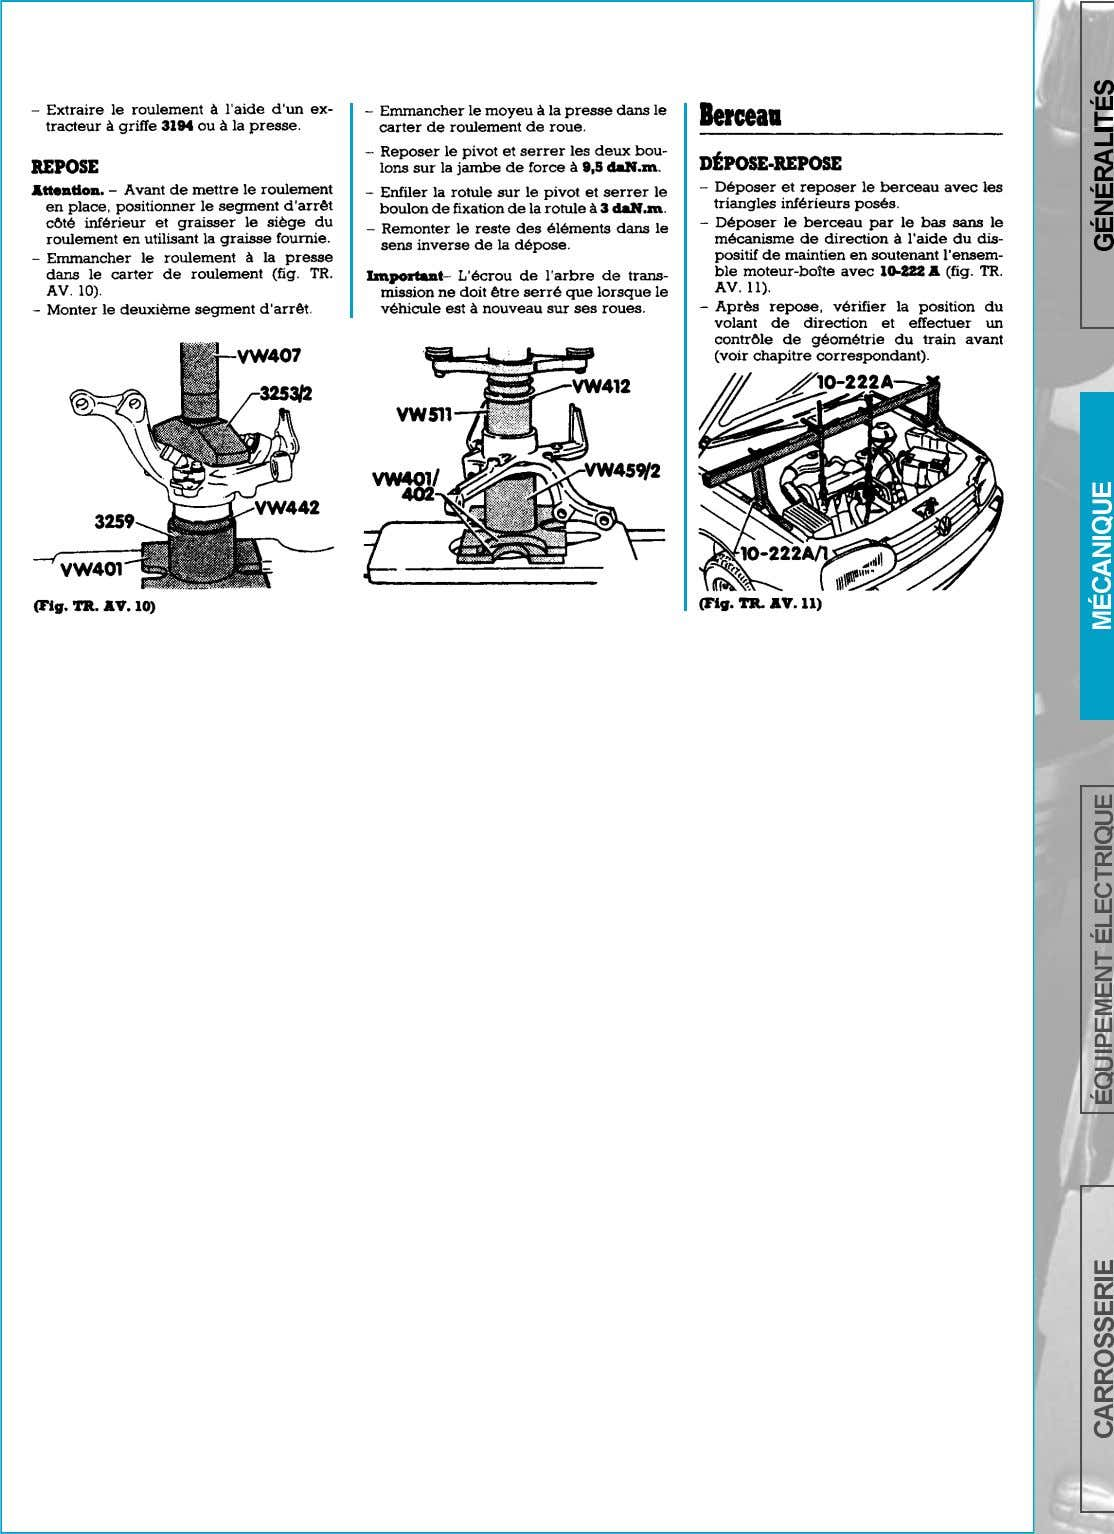 SUSPENSION-TRAIN AVANT     page 151